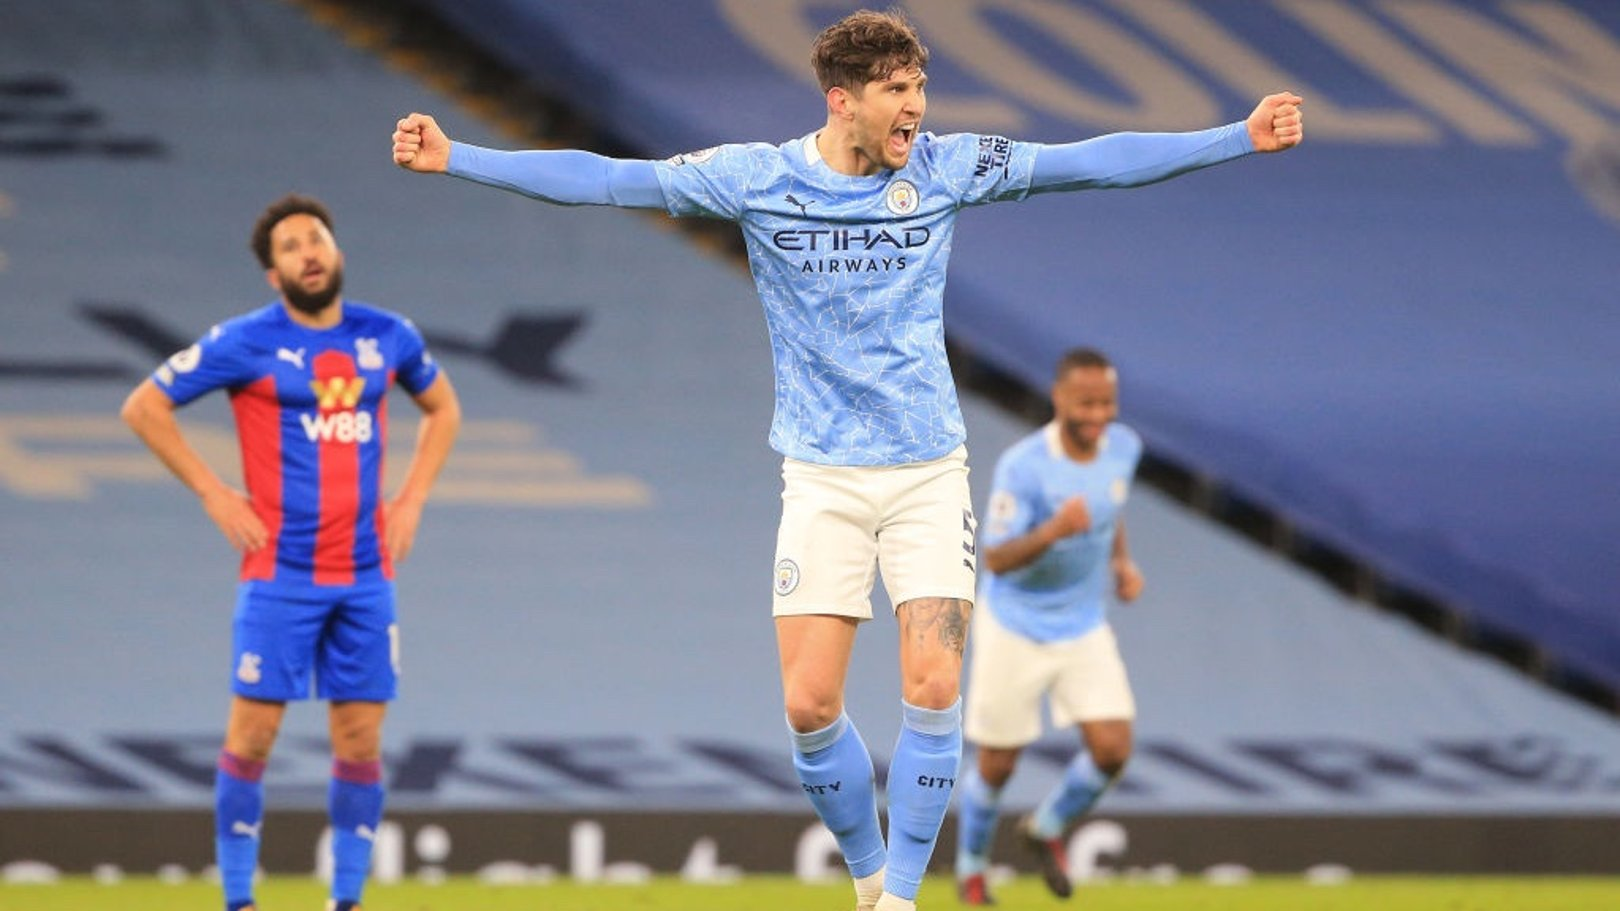 AT THE DOUBLE: Stones blasts in his second goal - Aguero would be proud of that!